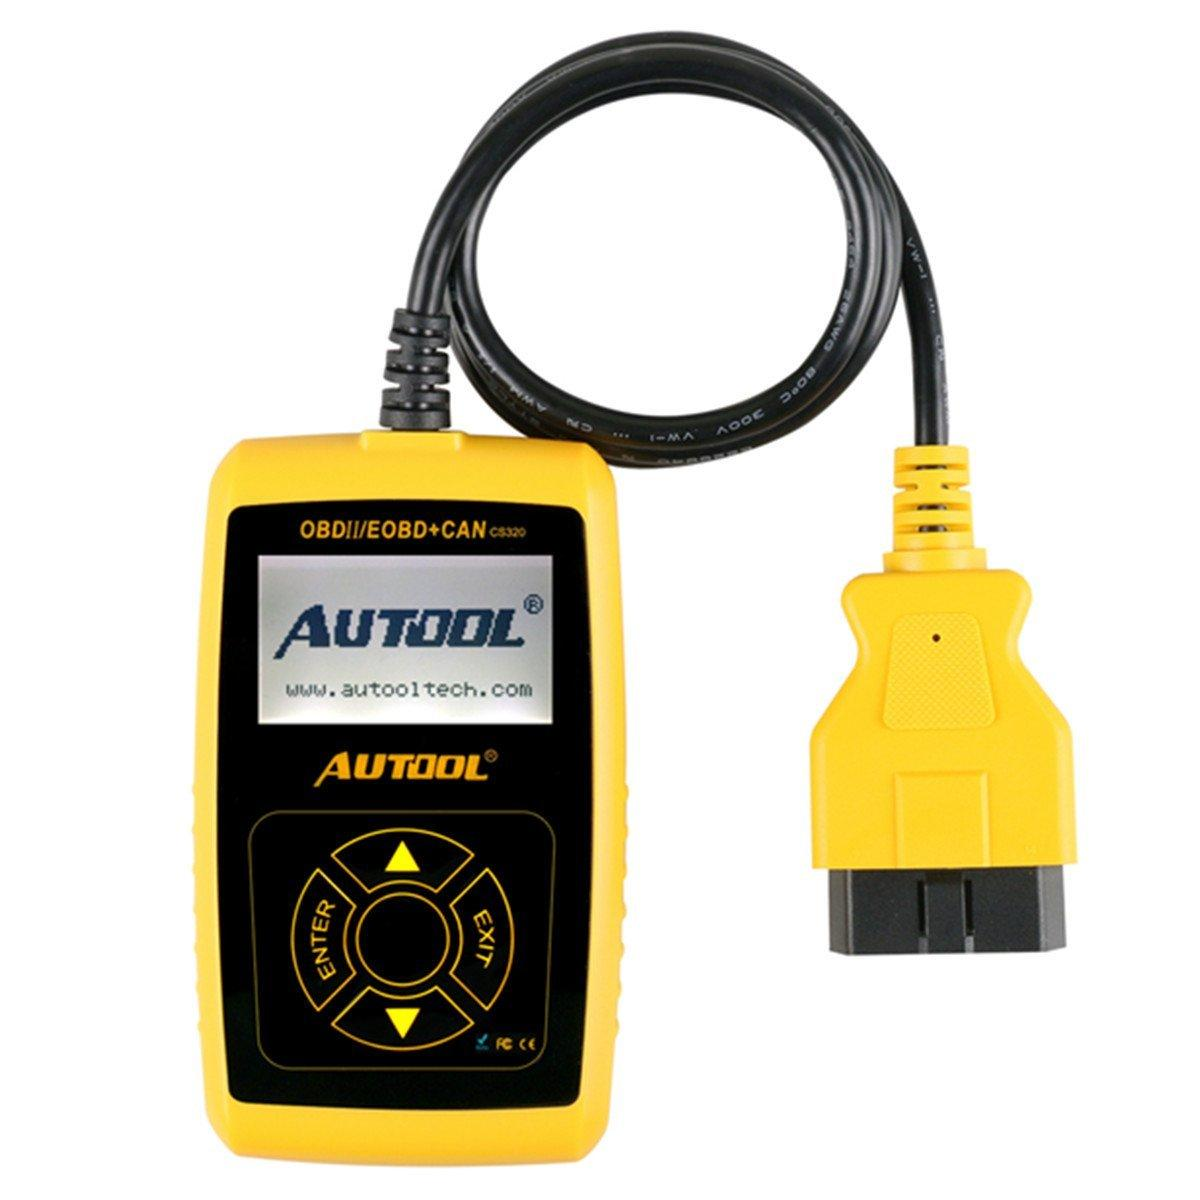 Vehicle Code Reader >> Autool Cs320 Obdii Car Vehicle Code Scanner Engine Fault Code Reader Auto Diagnostic Scan Tool